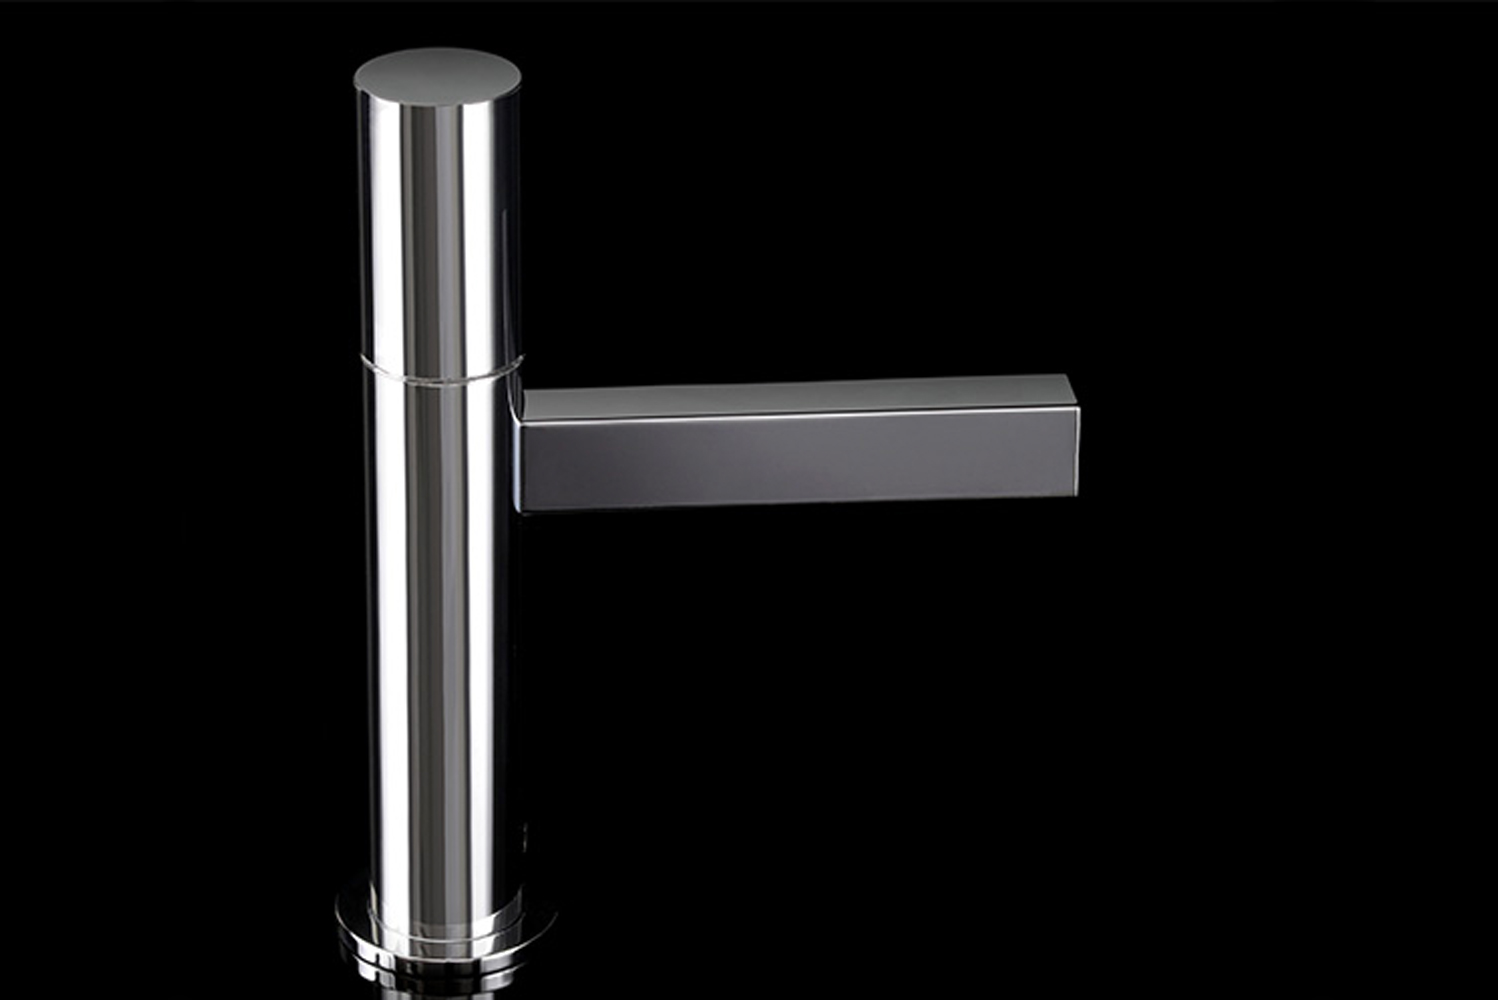 """The addition to the Nerea collection is a single lever faucet that has a 6"""" spout reach with a knurled no-notch-back tilting handle, accentuating the faucet's simple design."""